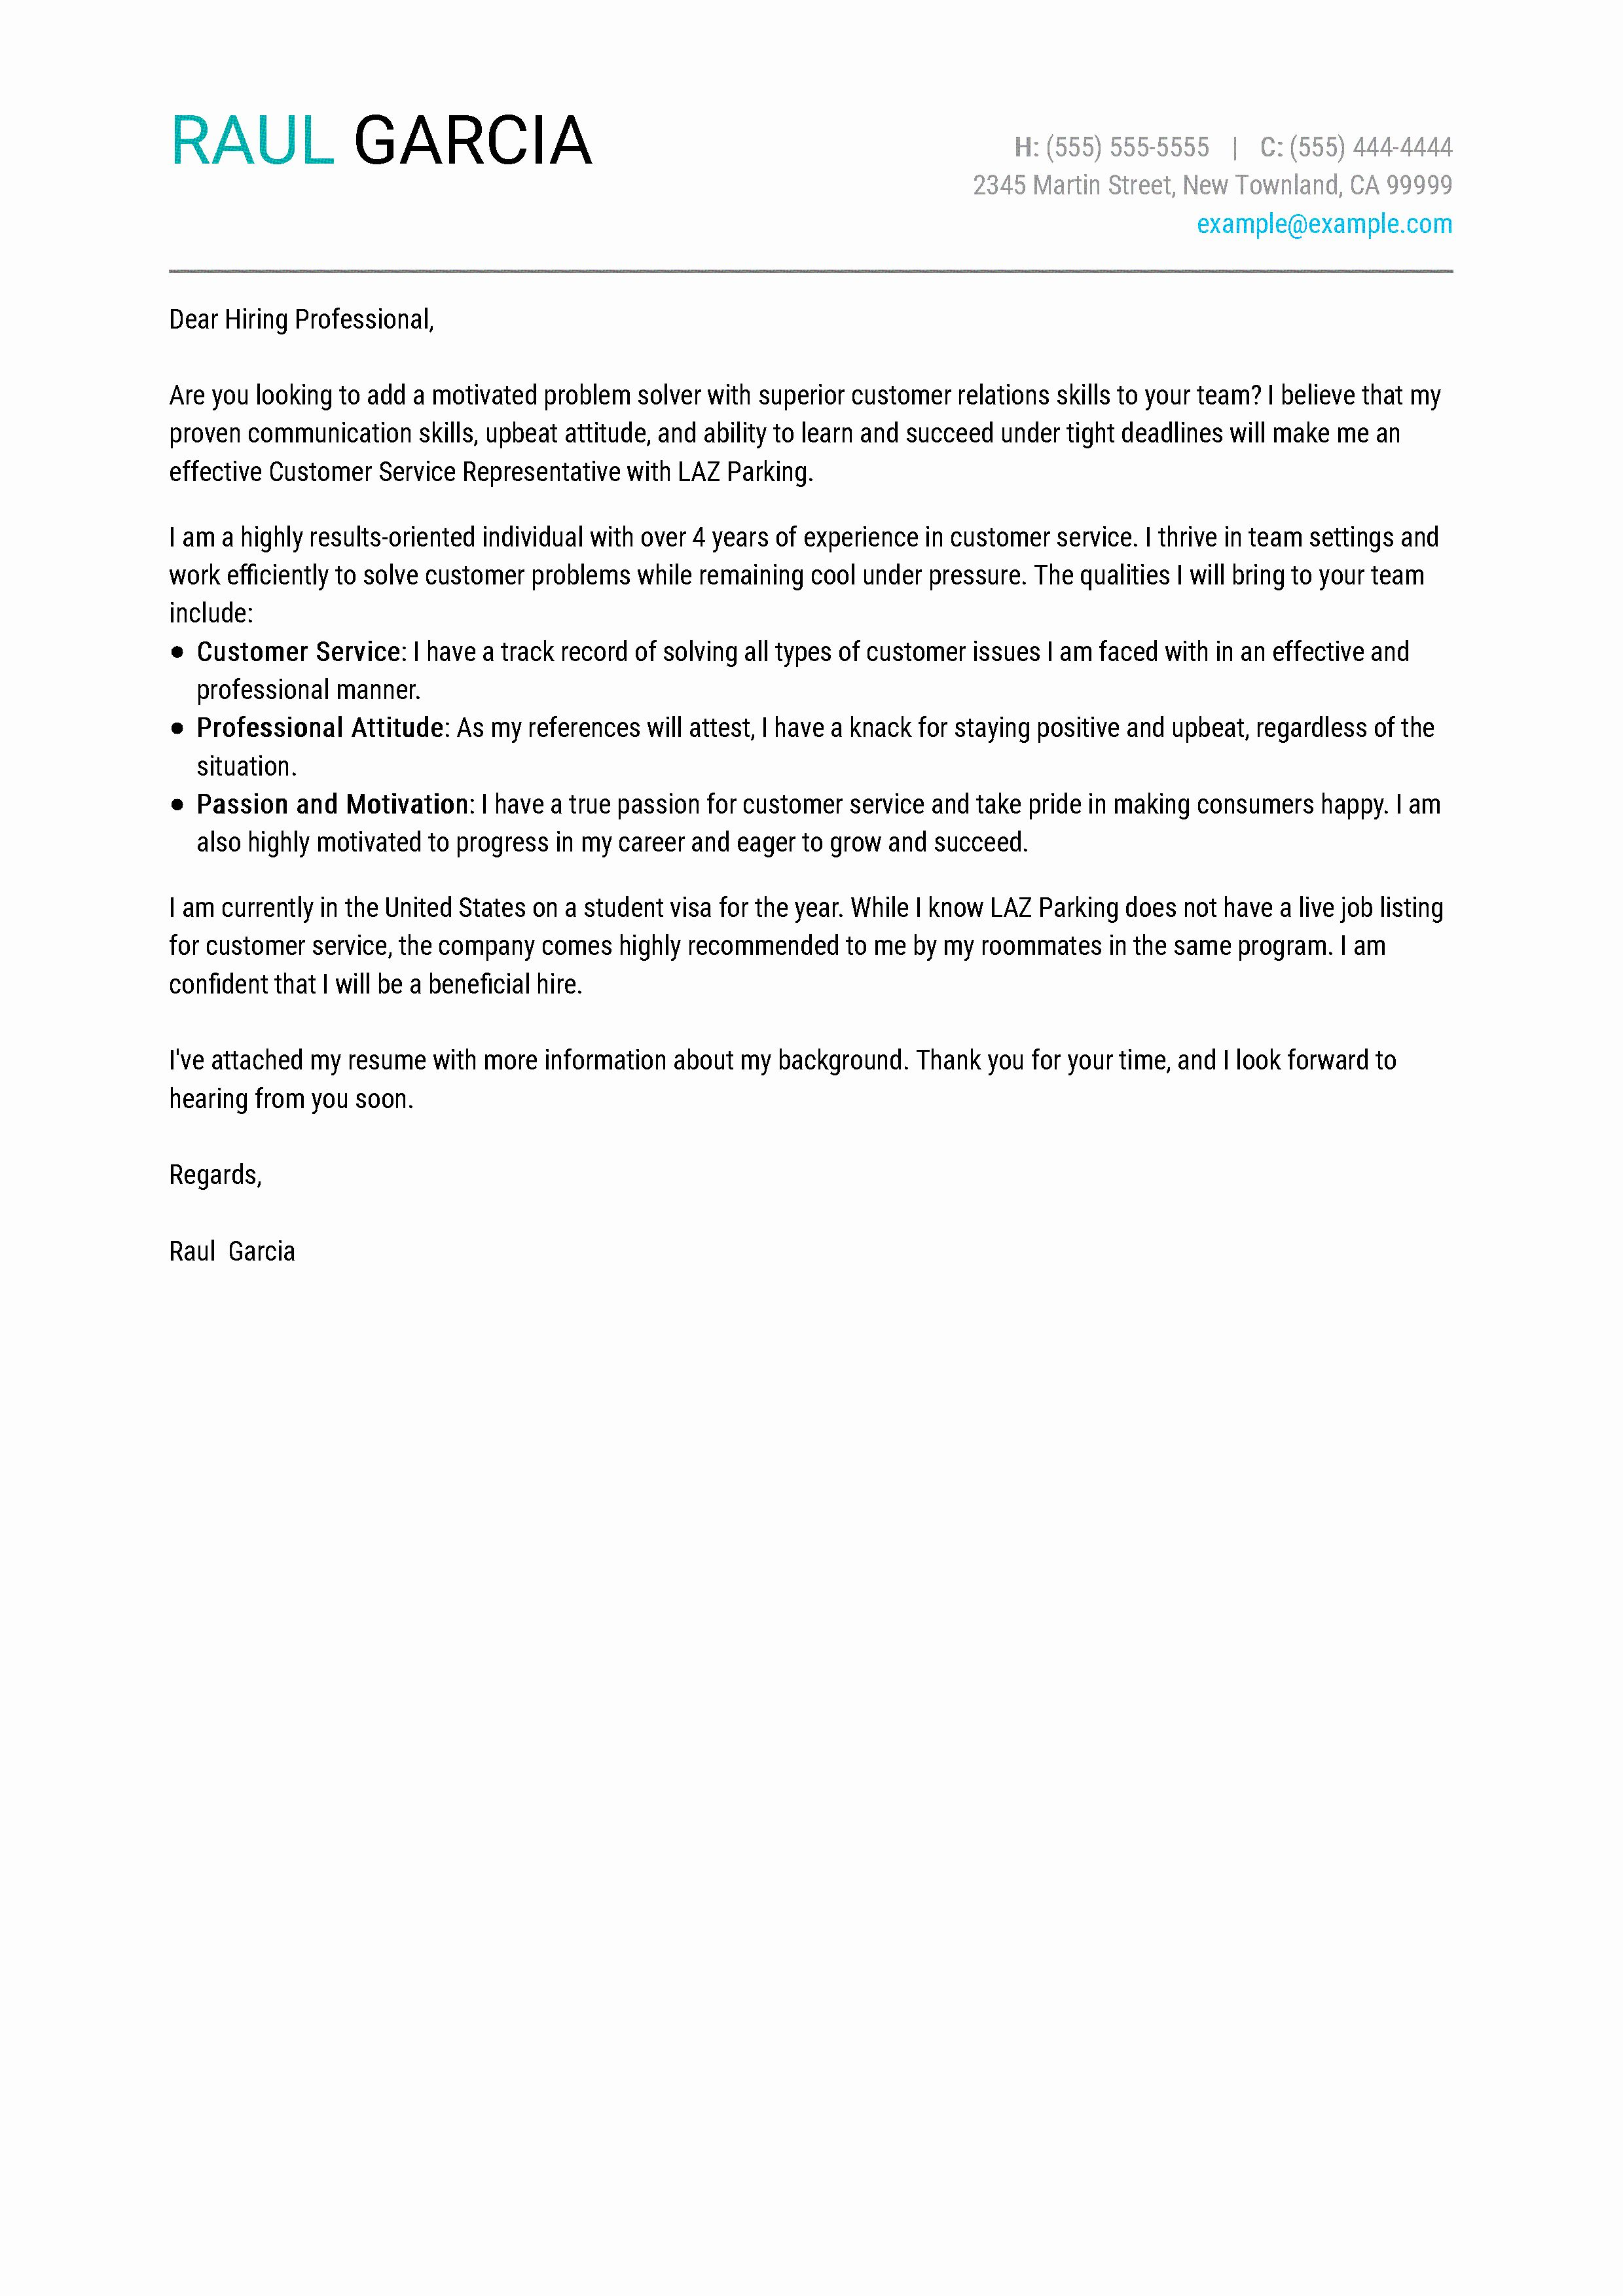 How To Make A Cover Letter With No Experience Top Taken Popular